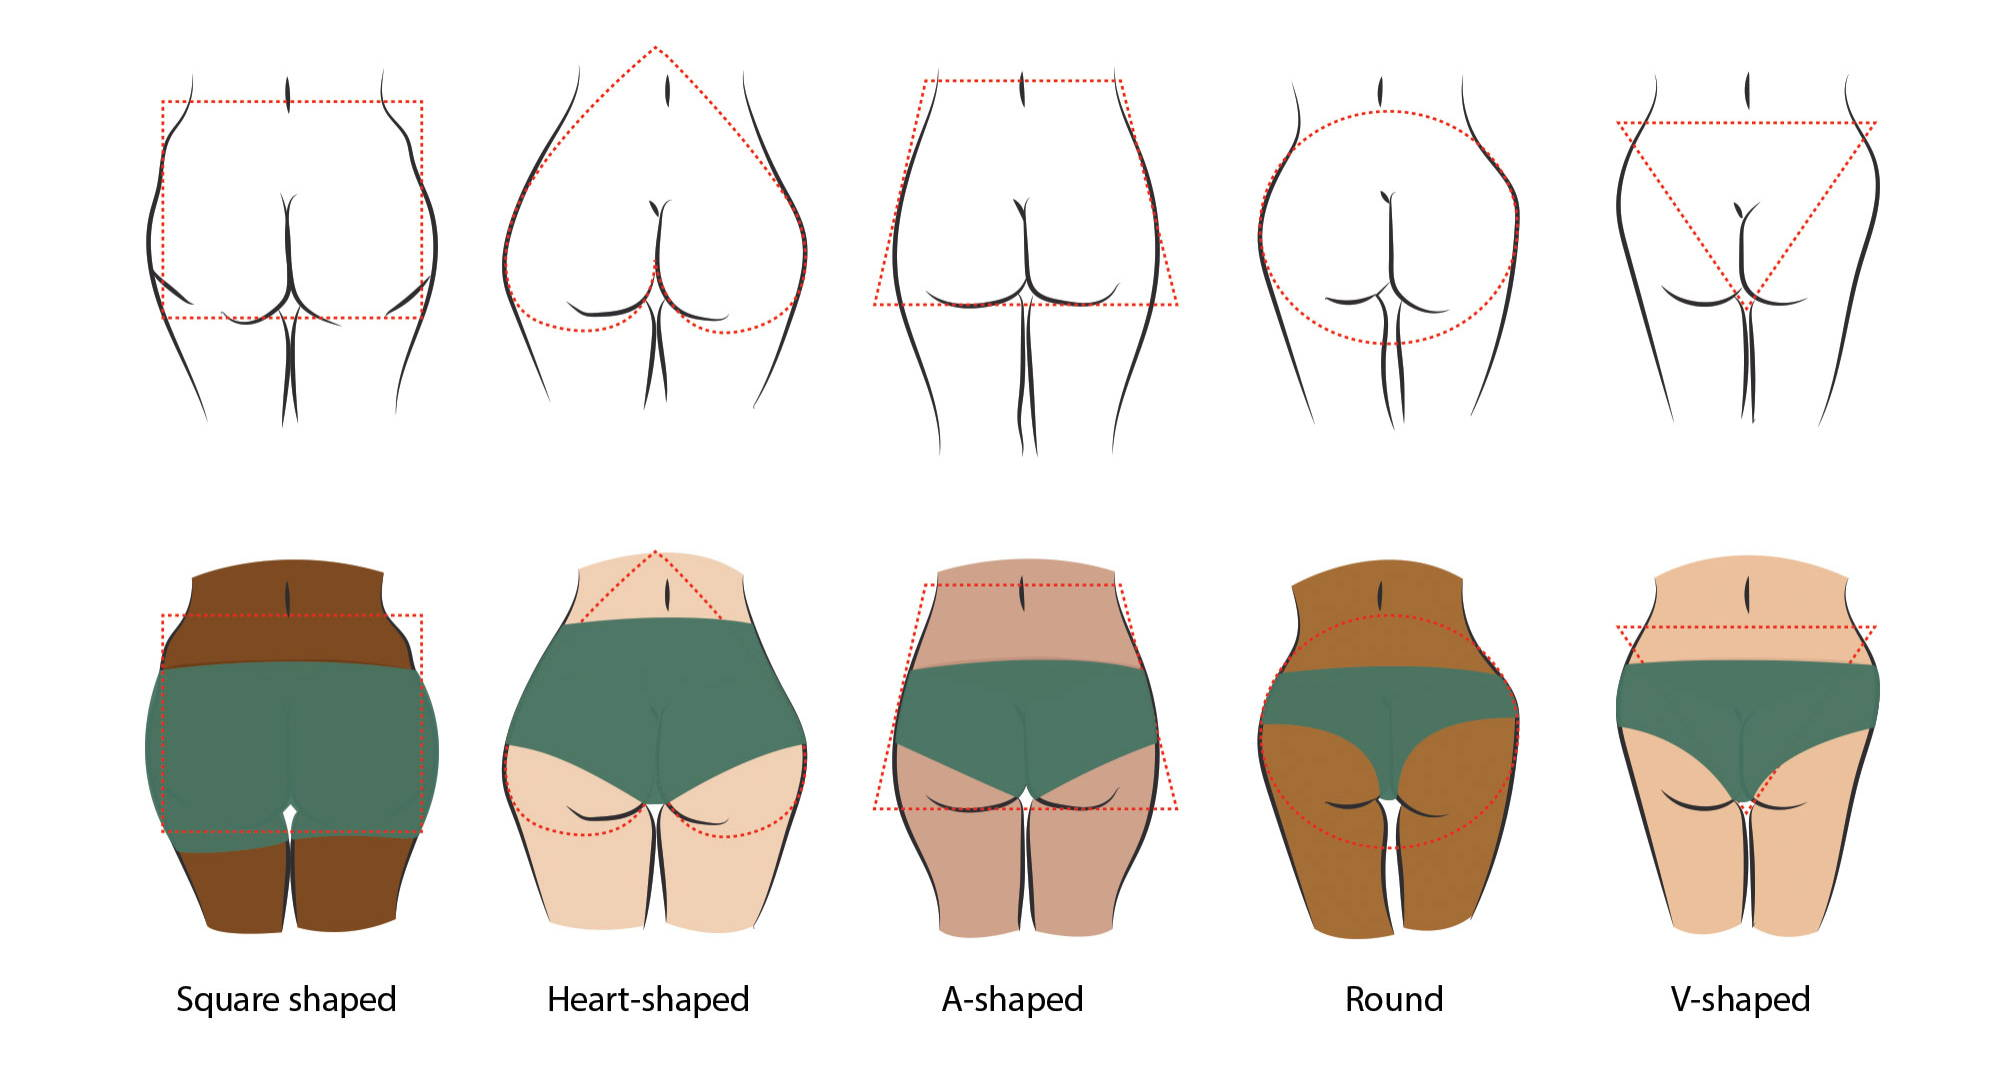 An illustration of the five general butt shapes.